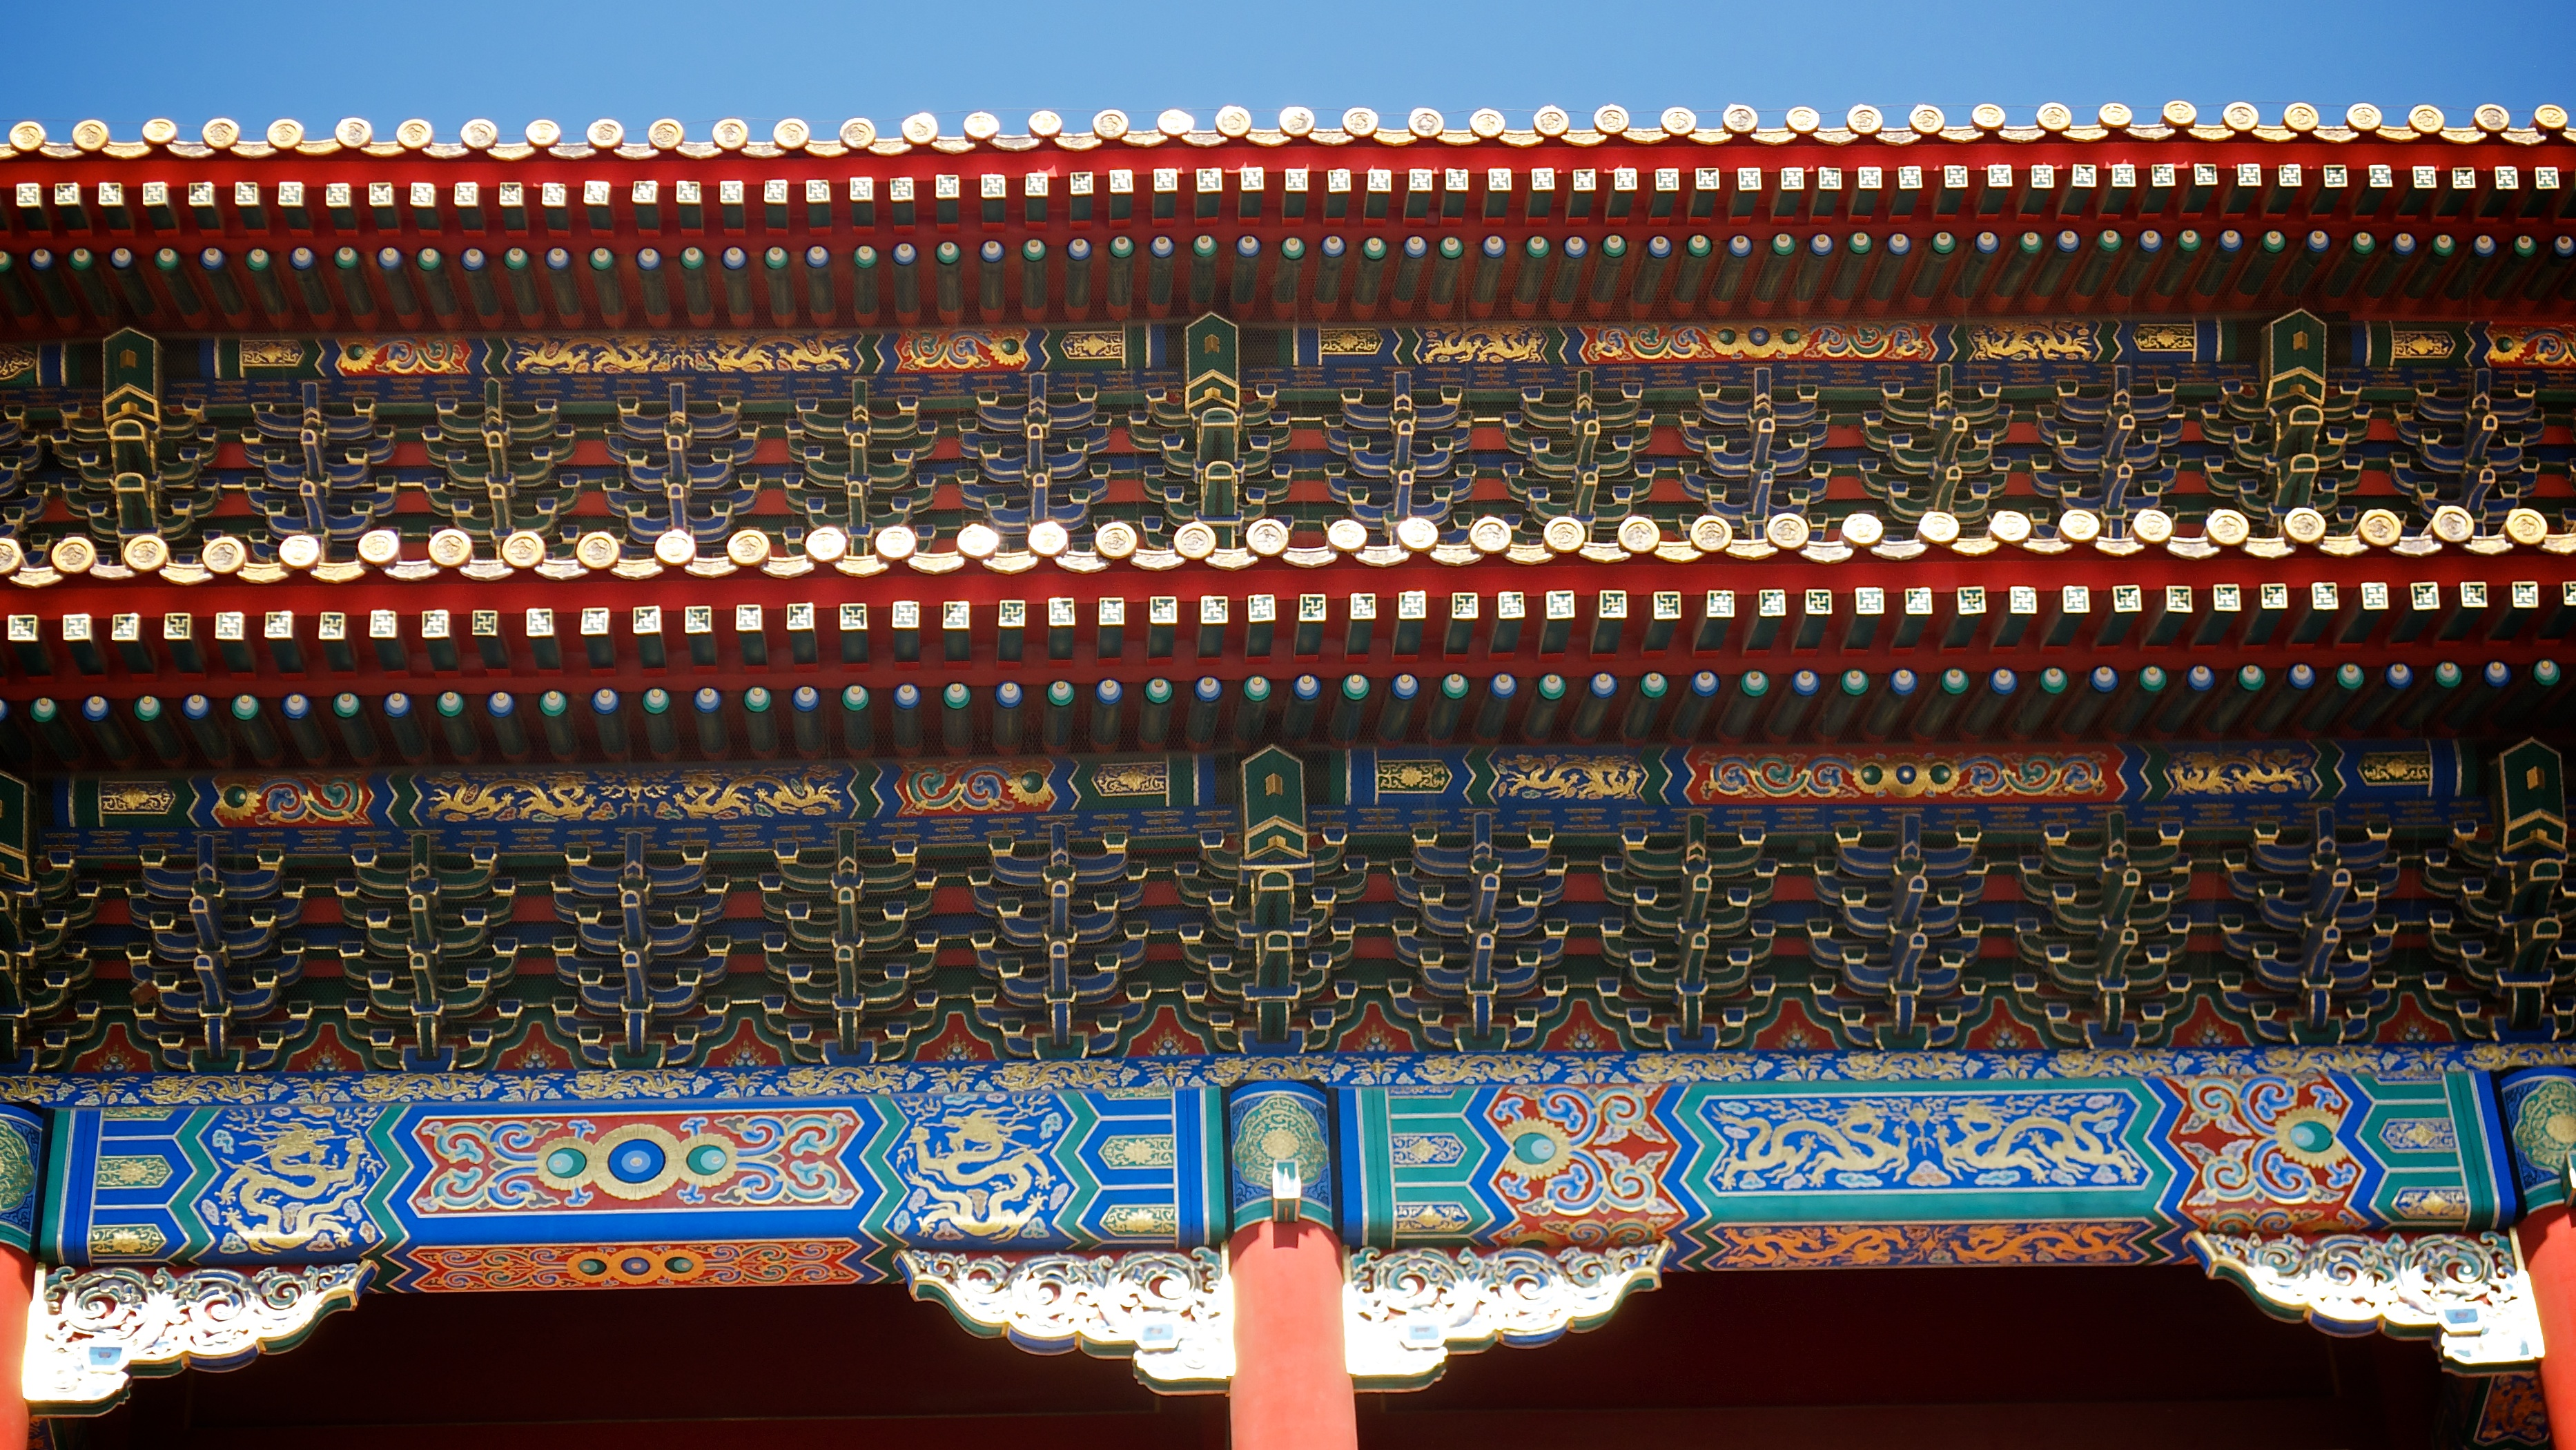 forbidden_city_beijing_china_2012.jpg